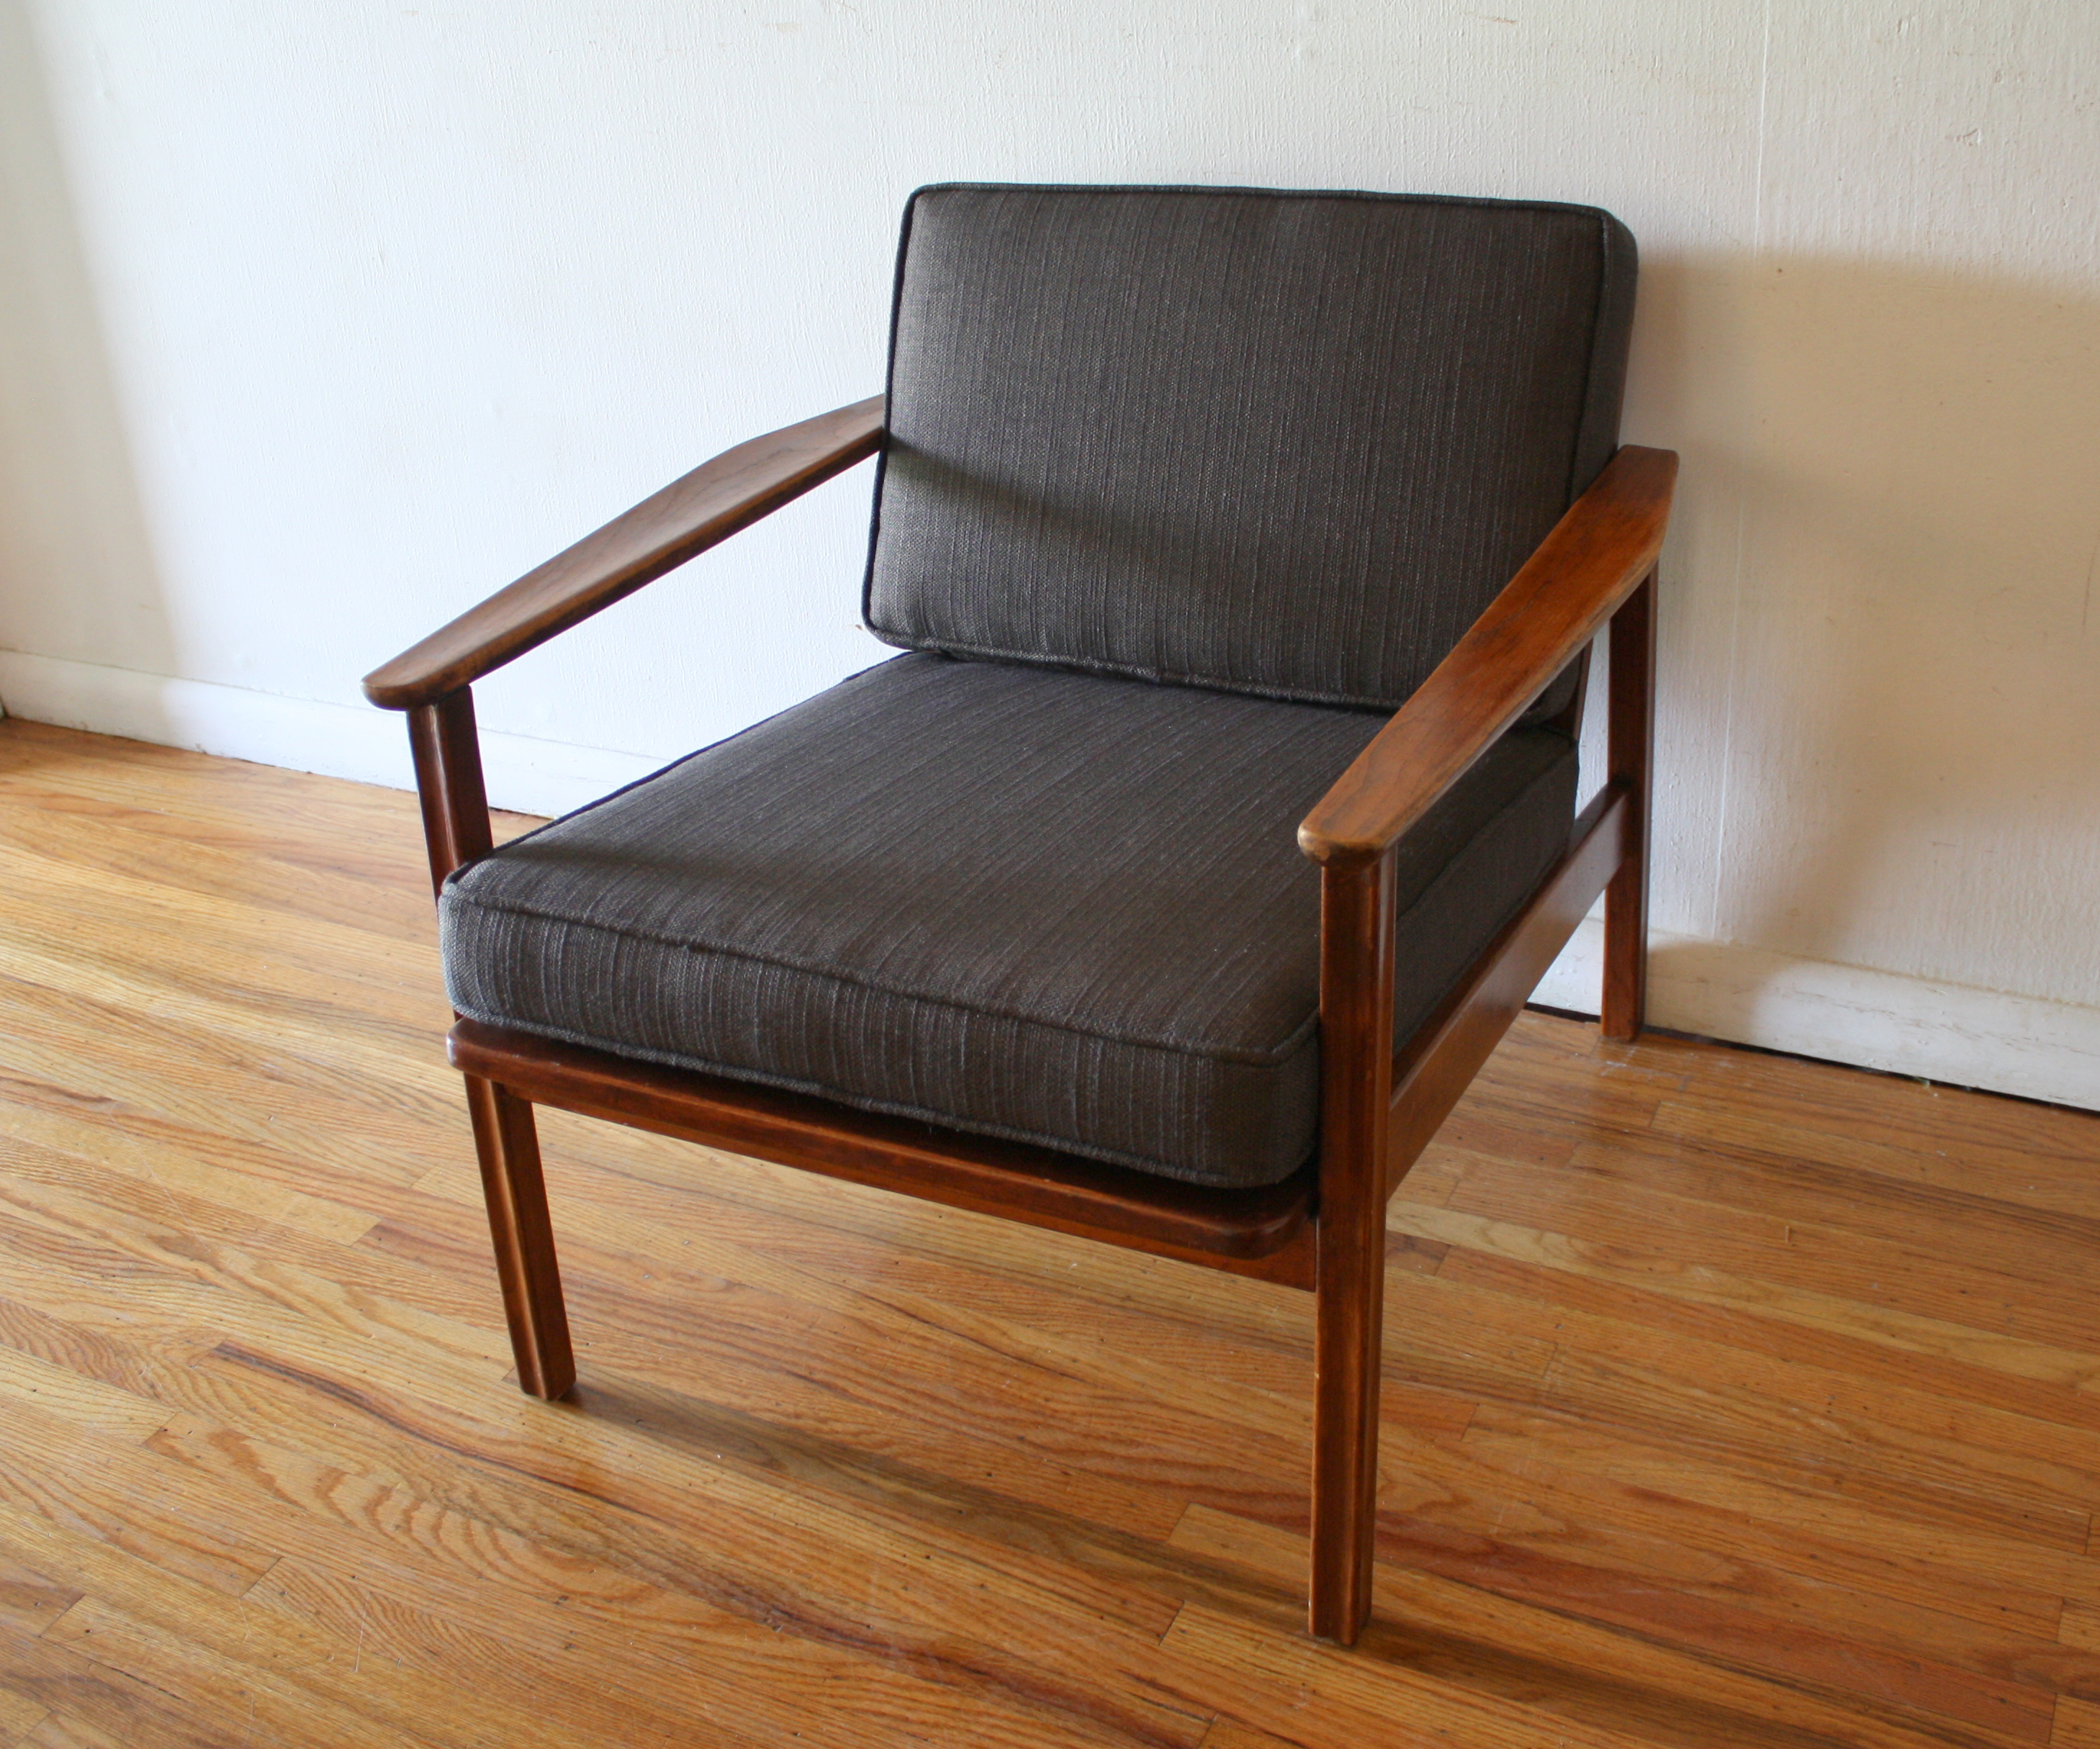 Baumritter arm lounge chair 2.JPG